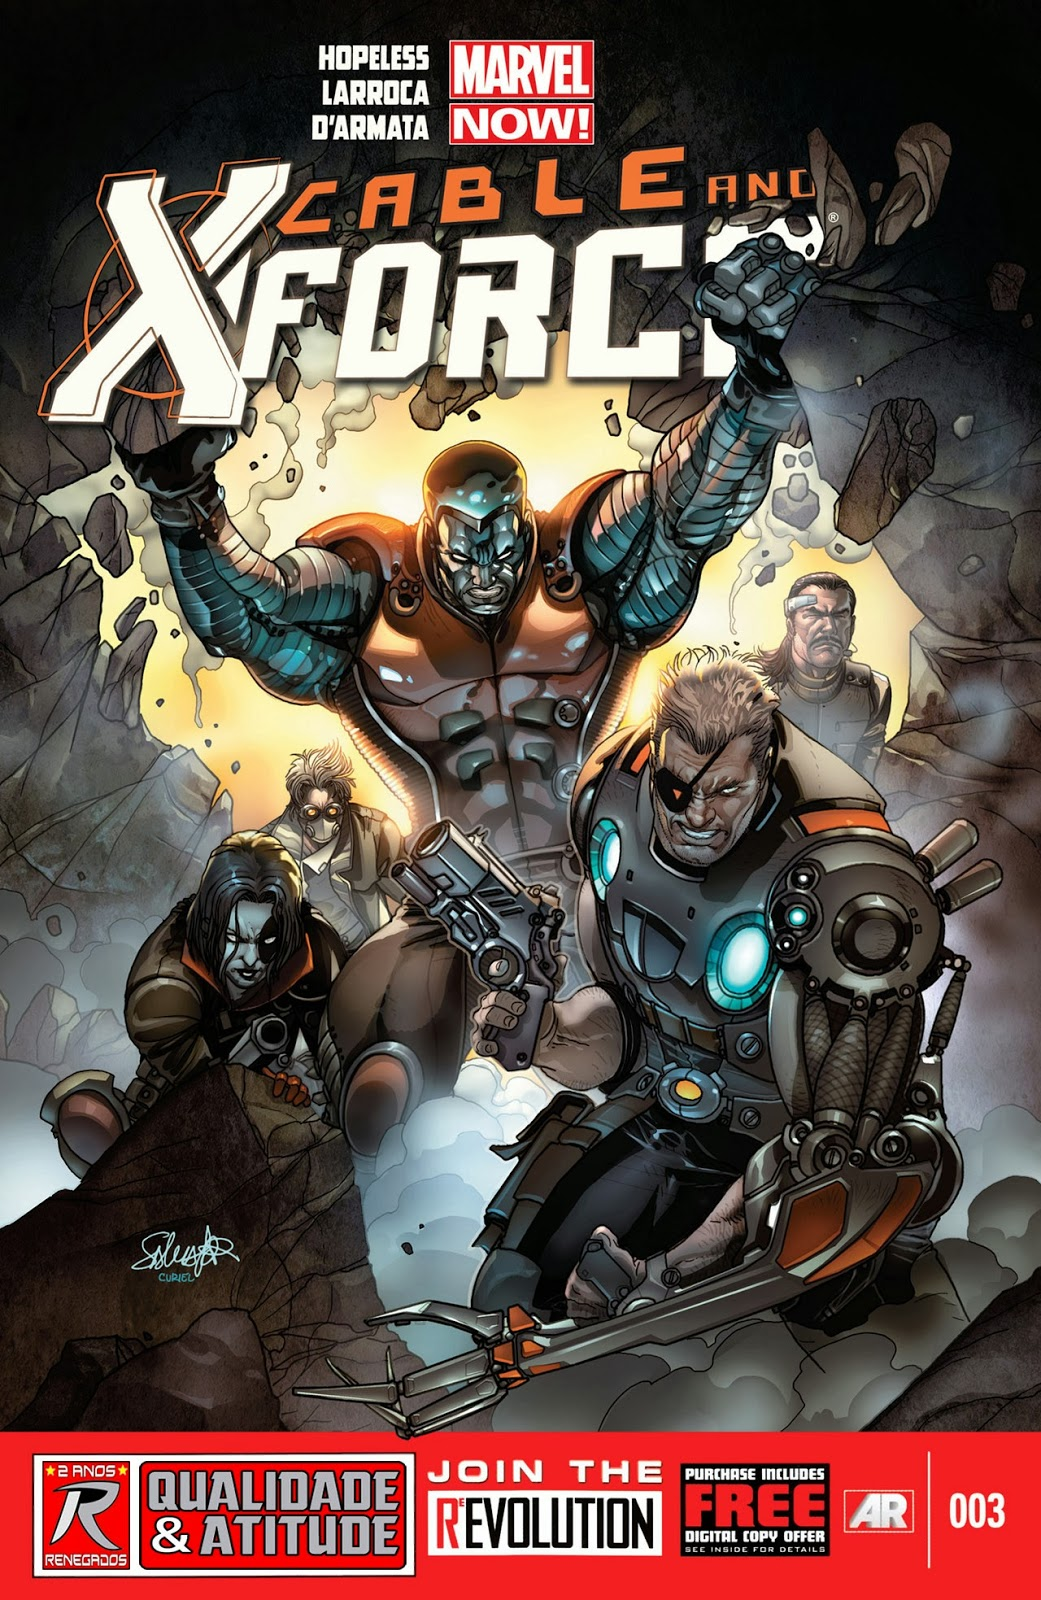 Nova Marvel! Cable e a X-Force #3